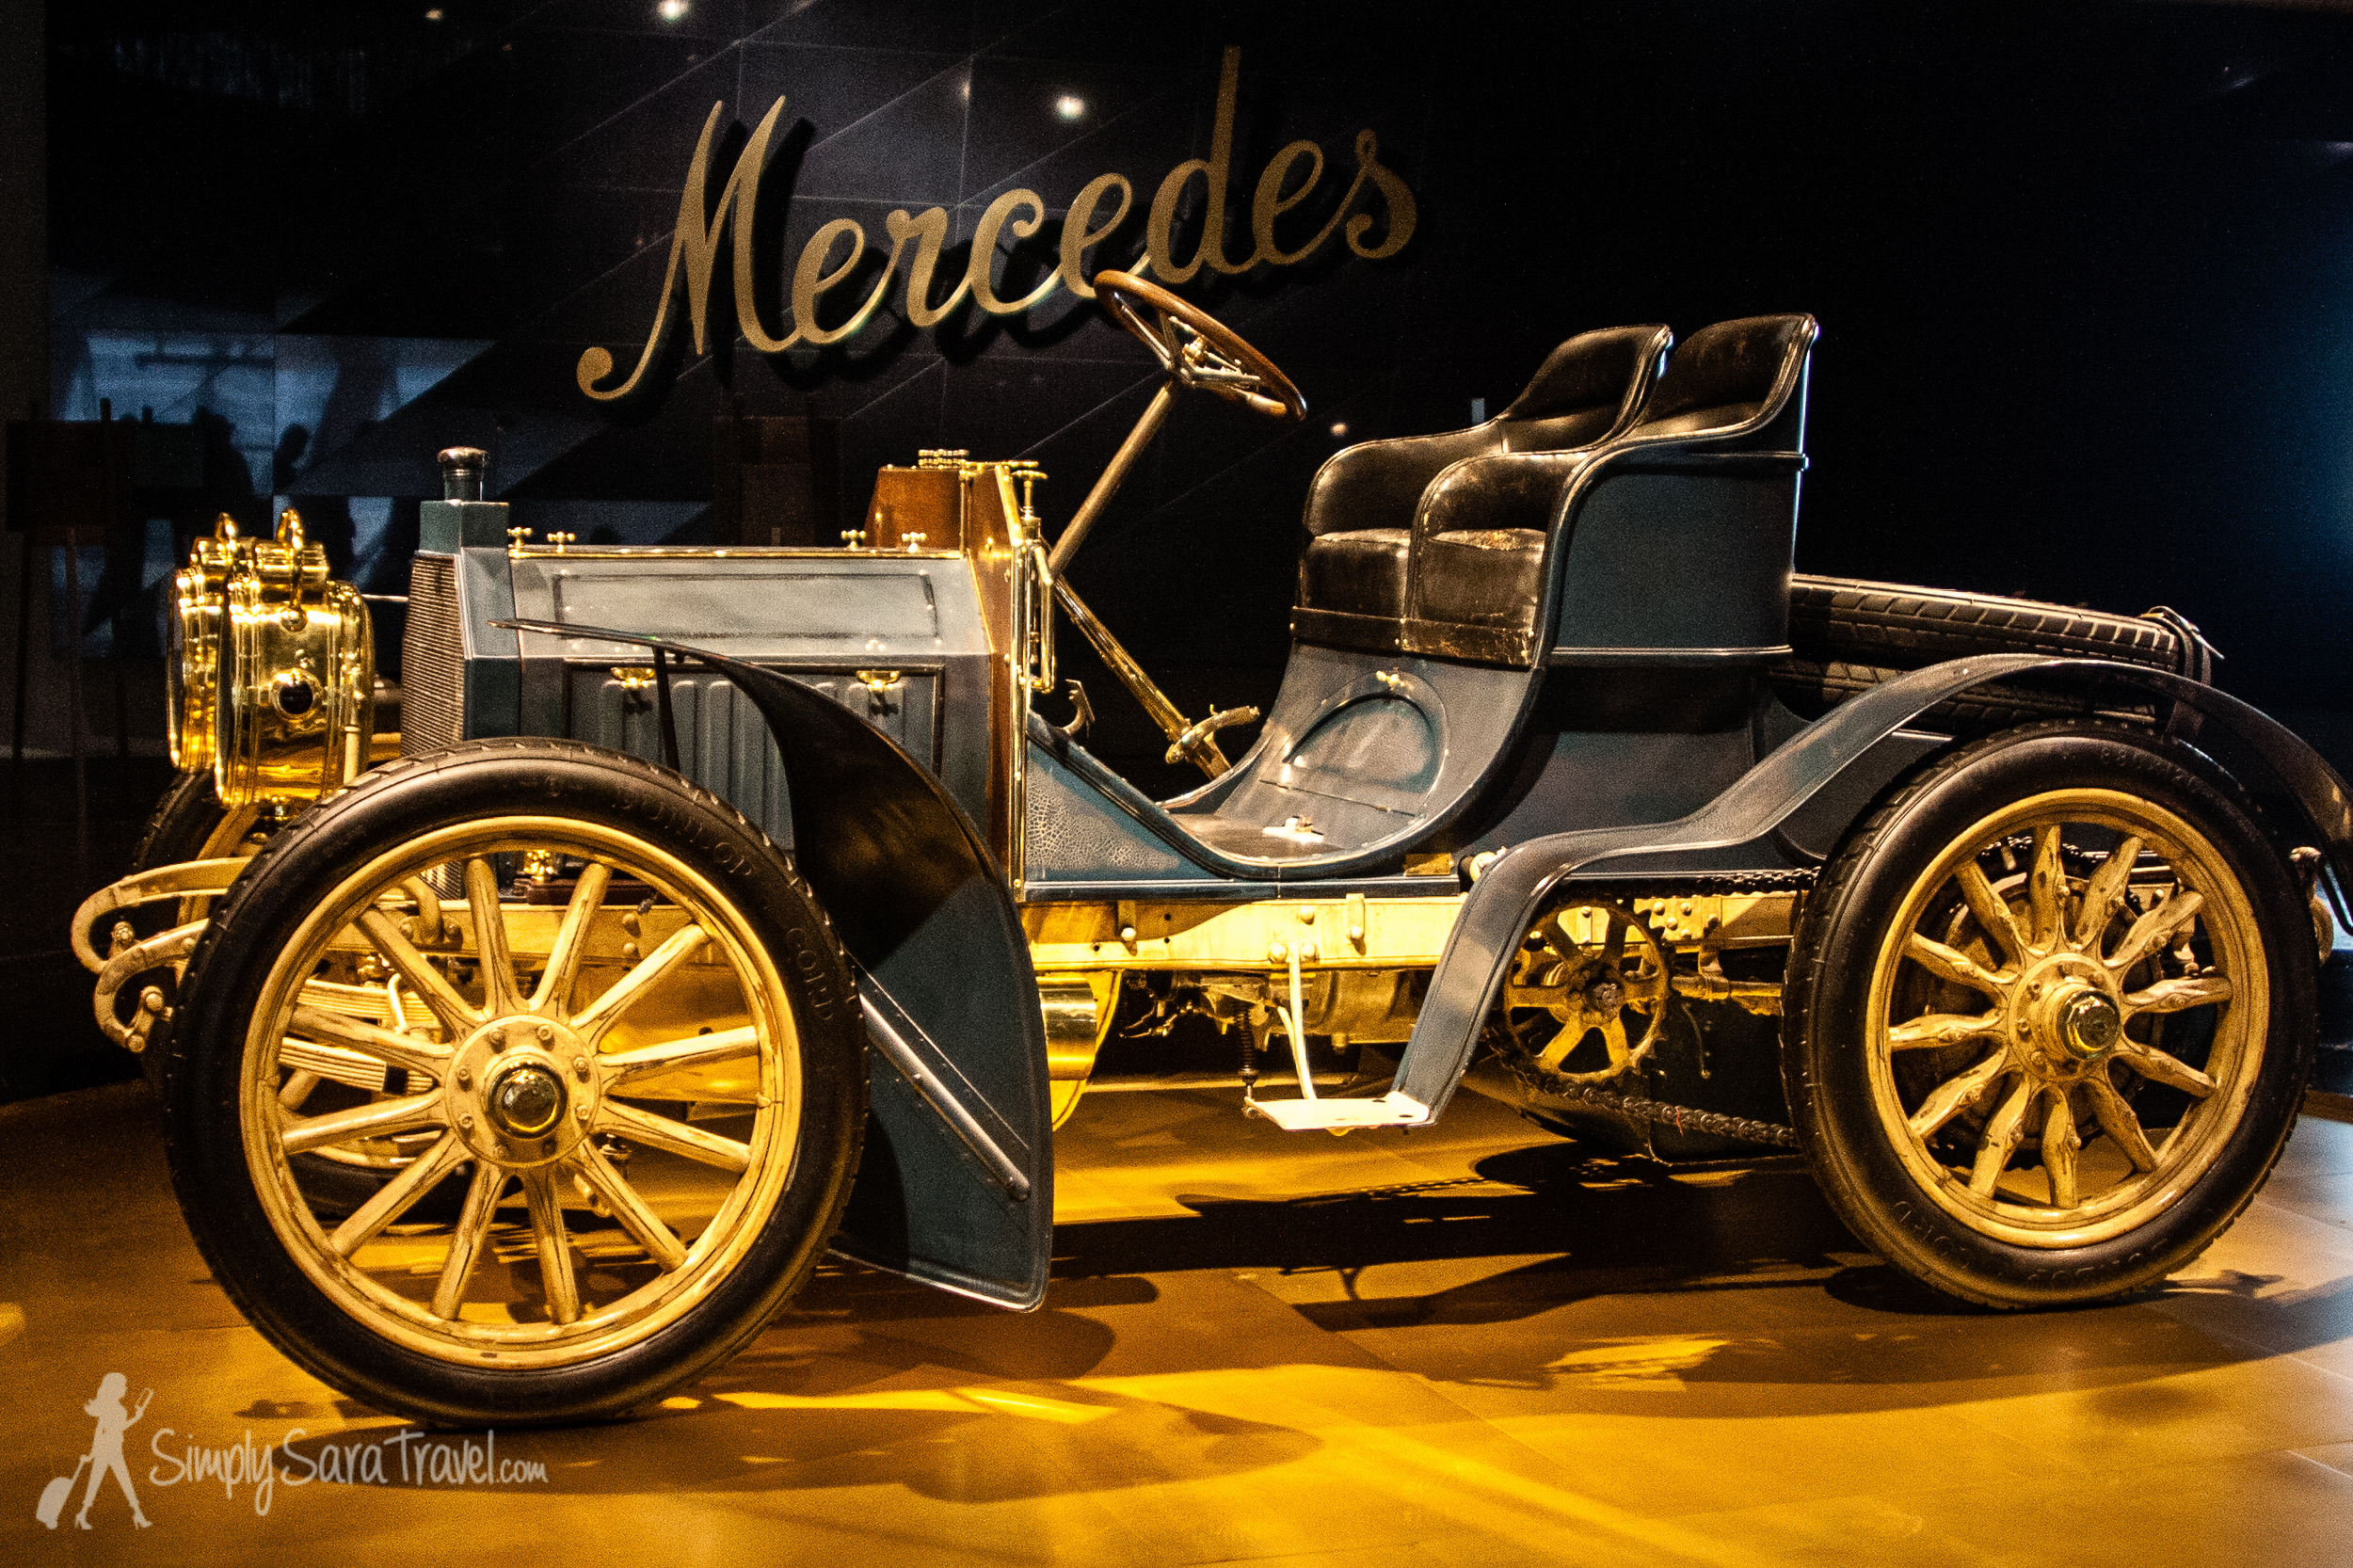 Wondering where the name Mercedes came from when the last names of the inventors where Benz and Daimler? A business man namedEmil Jellinek became involved selling and marketing Daimler cars and the name of his daughter, Mercedes, was eventually adopted for the brand. (You can read more on the story at  daimler.com .)